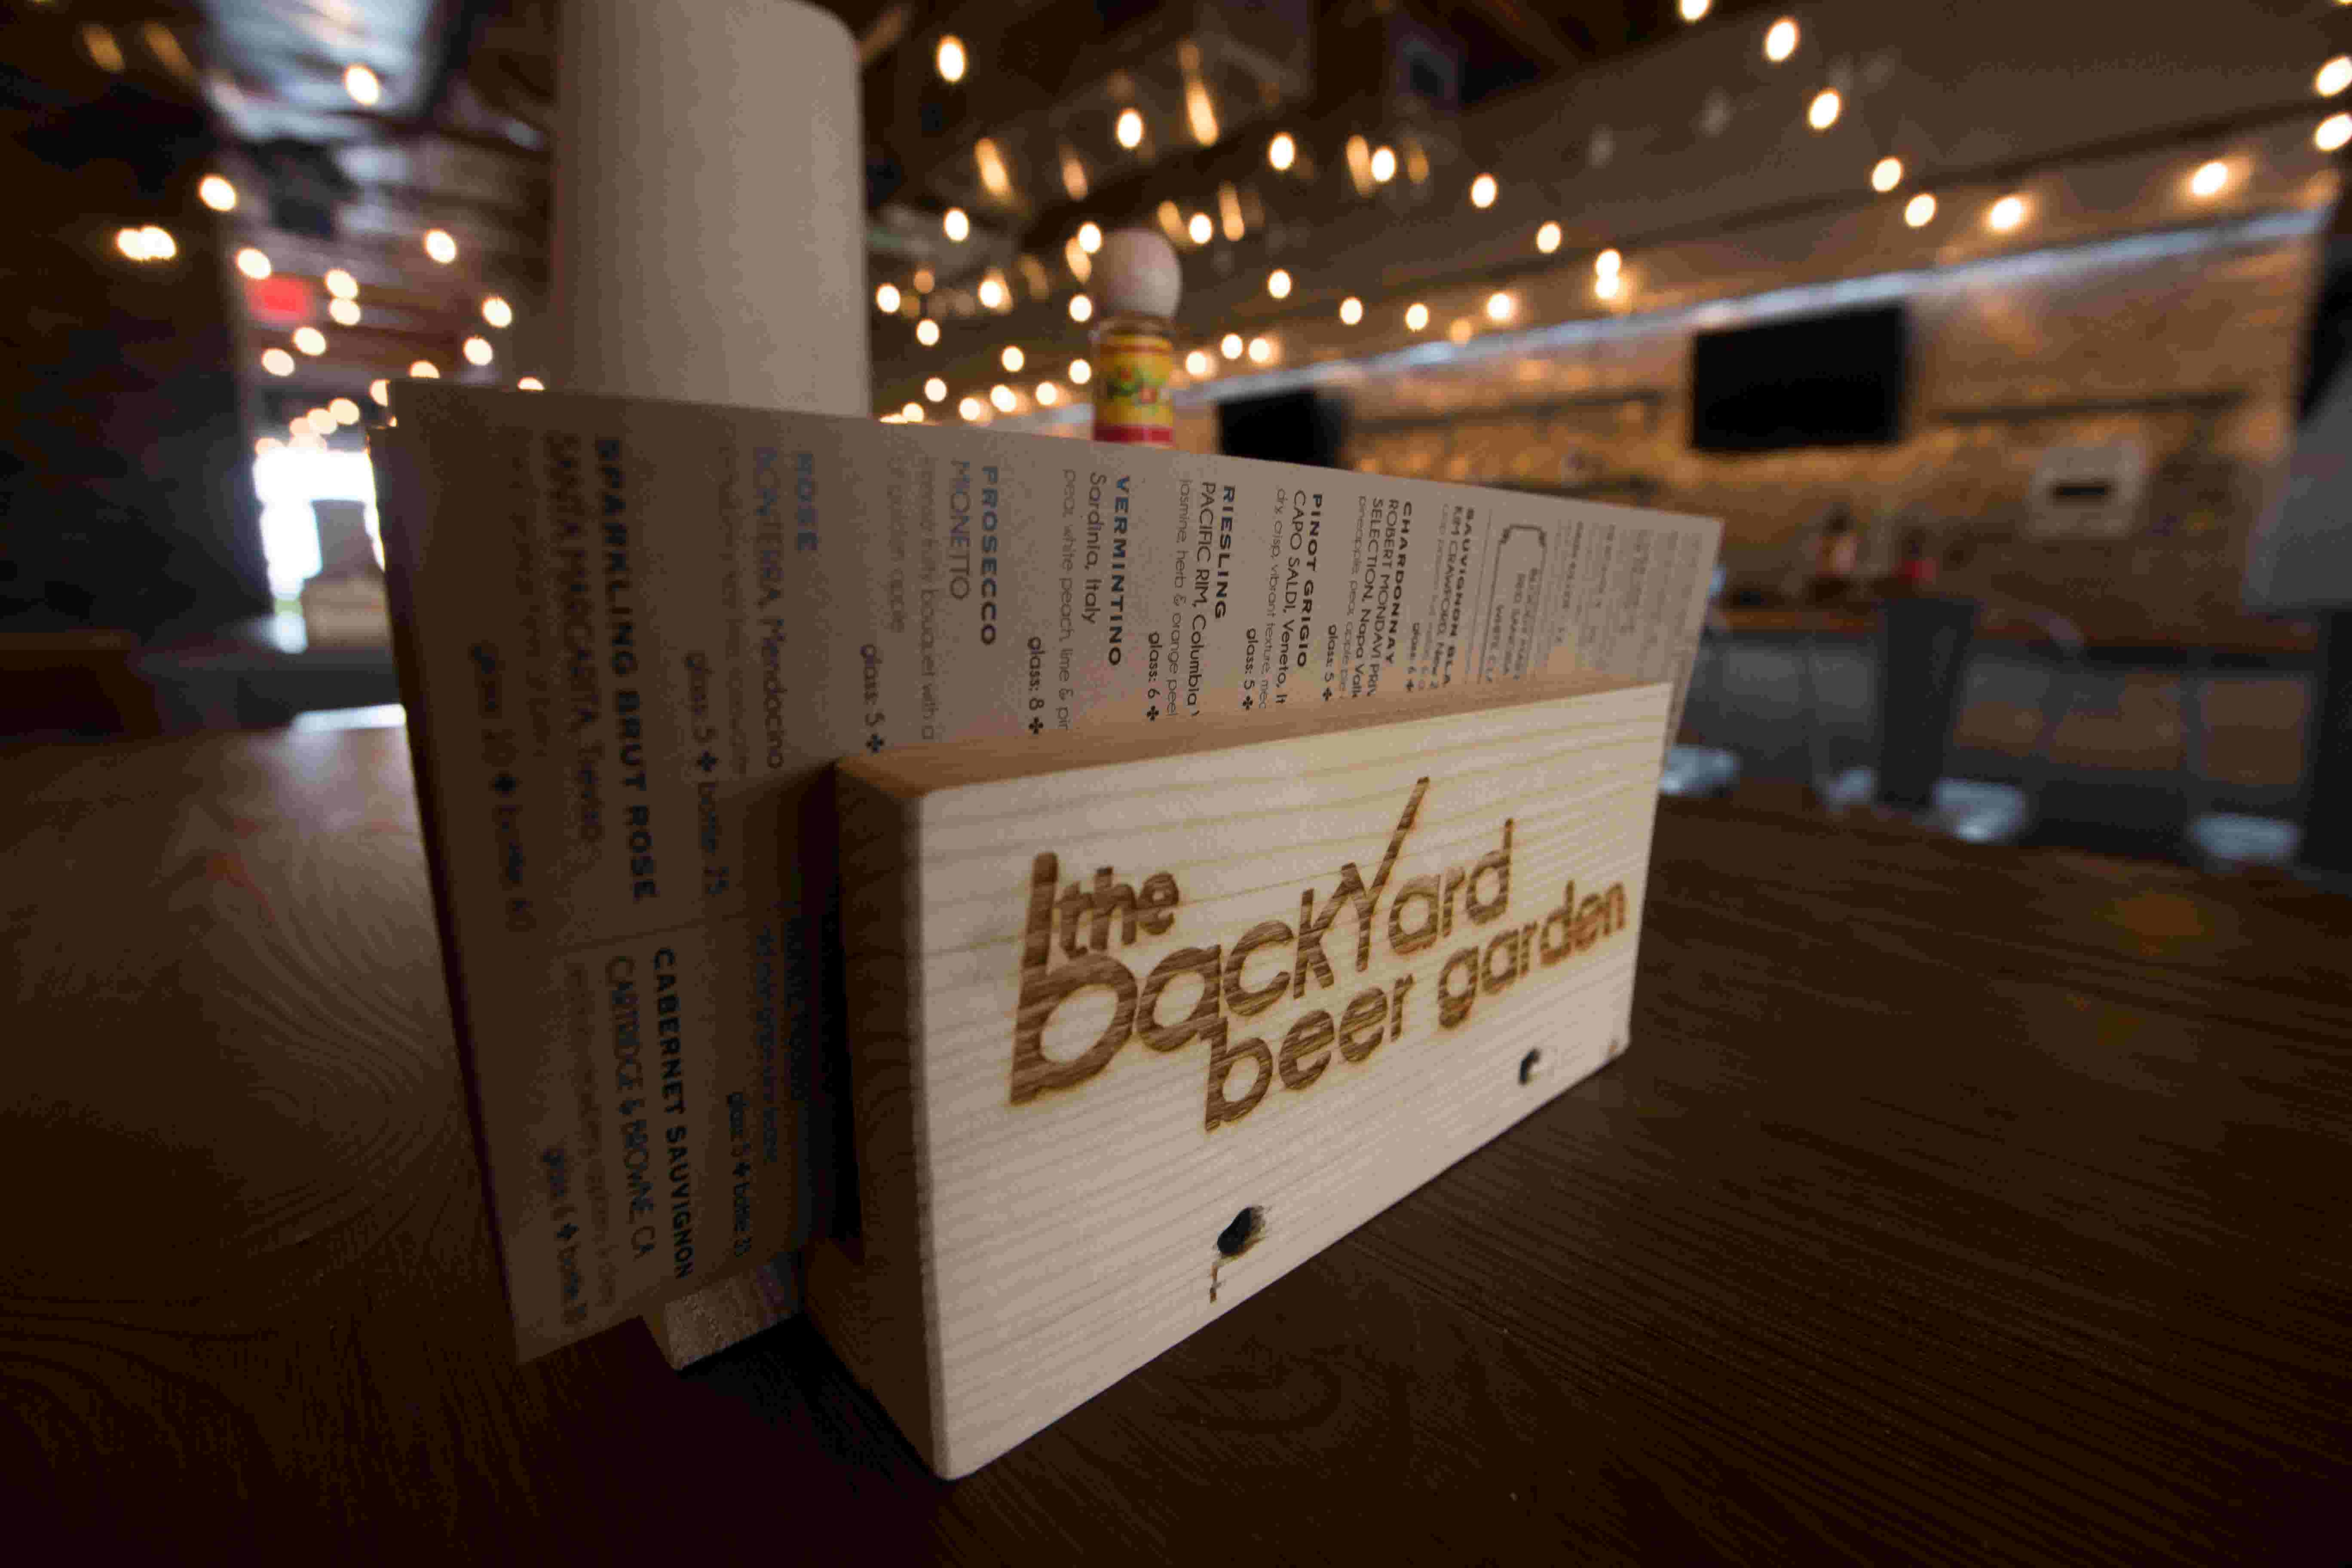 Cape Coral restaurants: A first look at the new Backyard Beer Garden